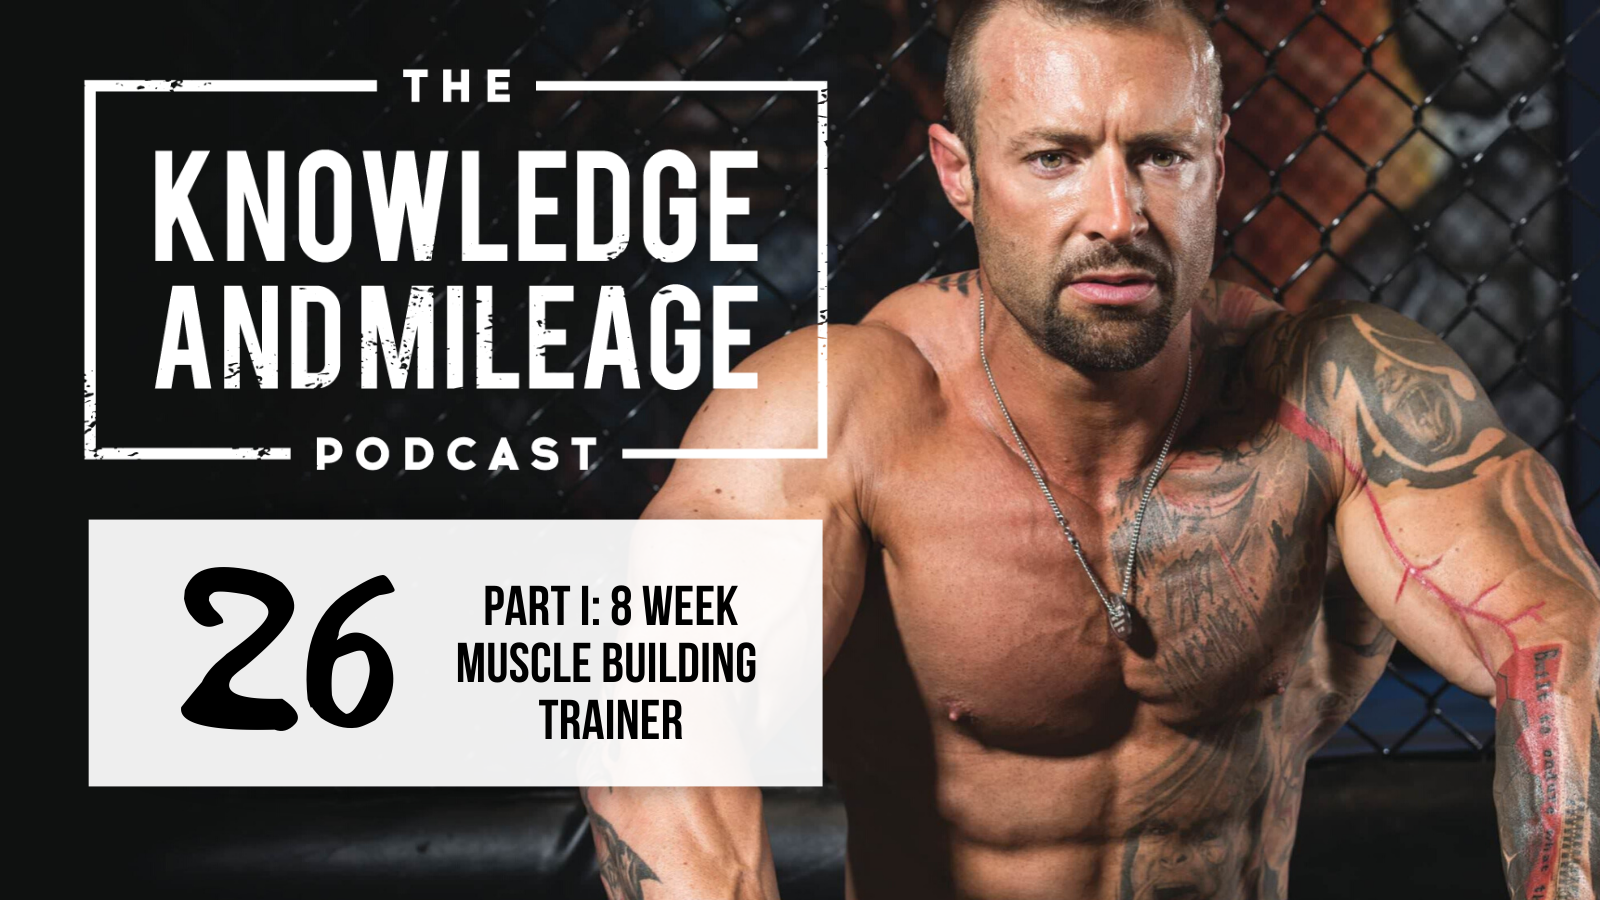 EP 26: Part I: Tips for the New 8-Week Muscle-Building Video Trainer